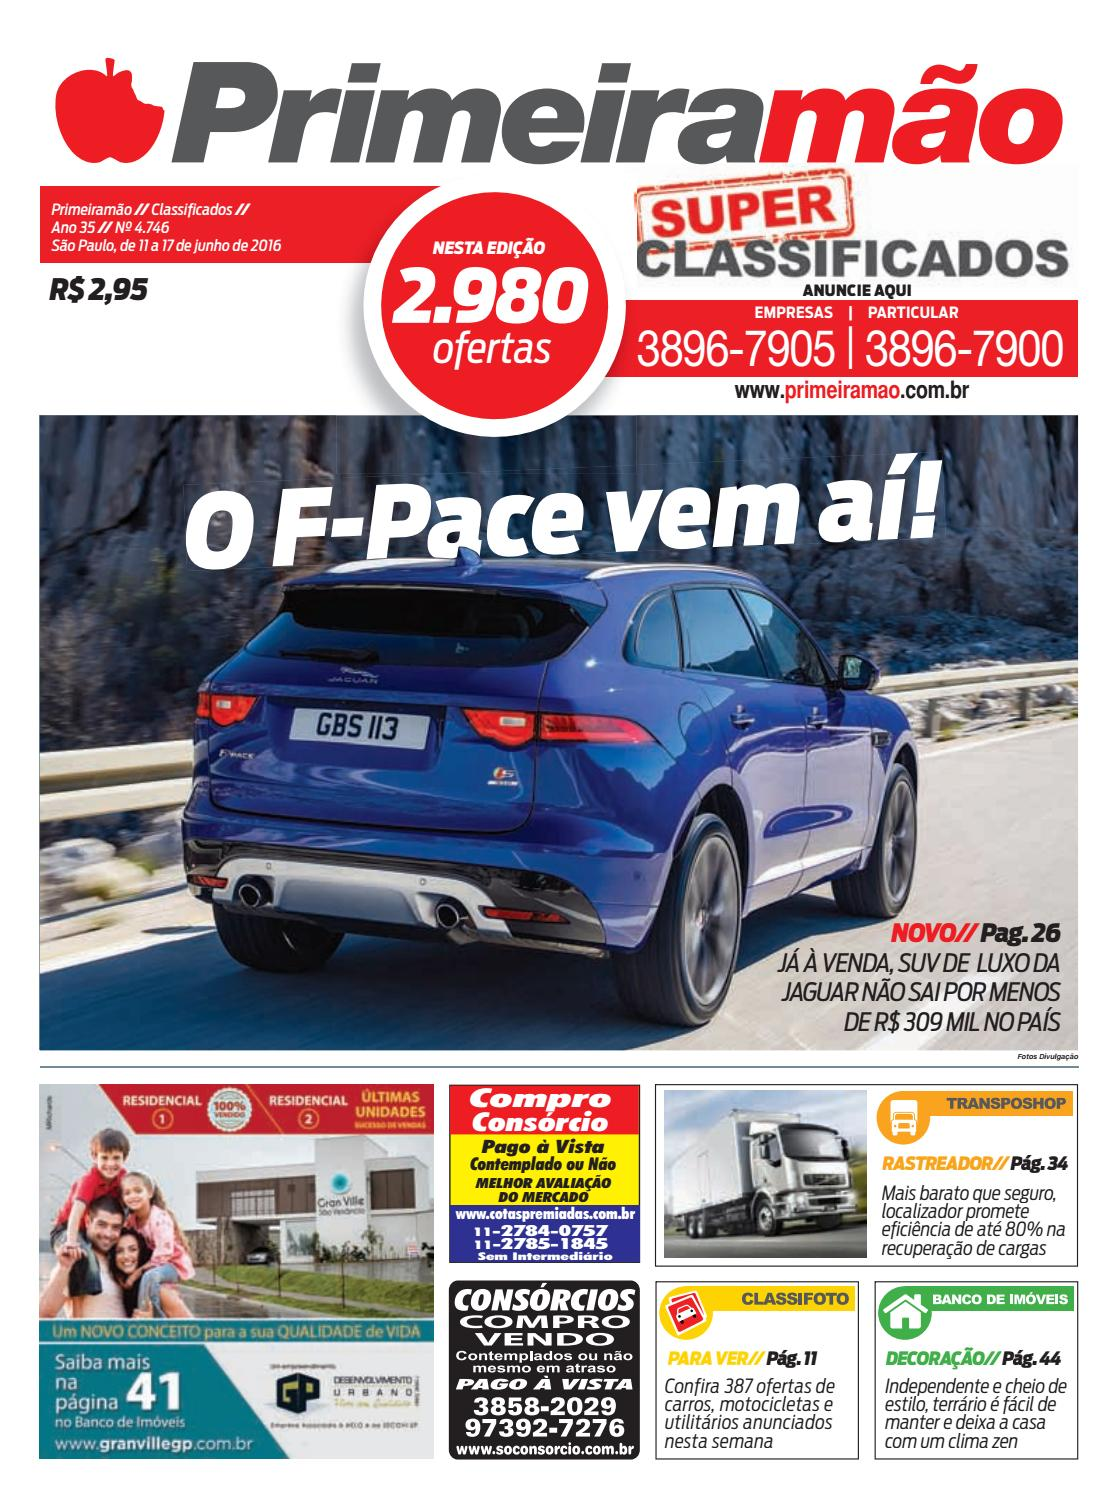 280bc8bf0d9 20160611_br_primeiramaoclassificados by metro brazil - issuu